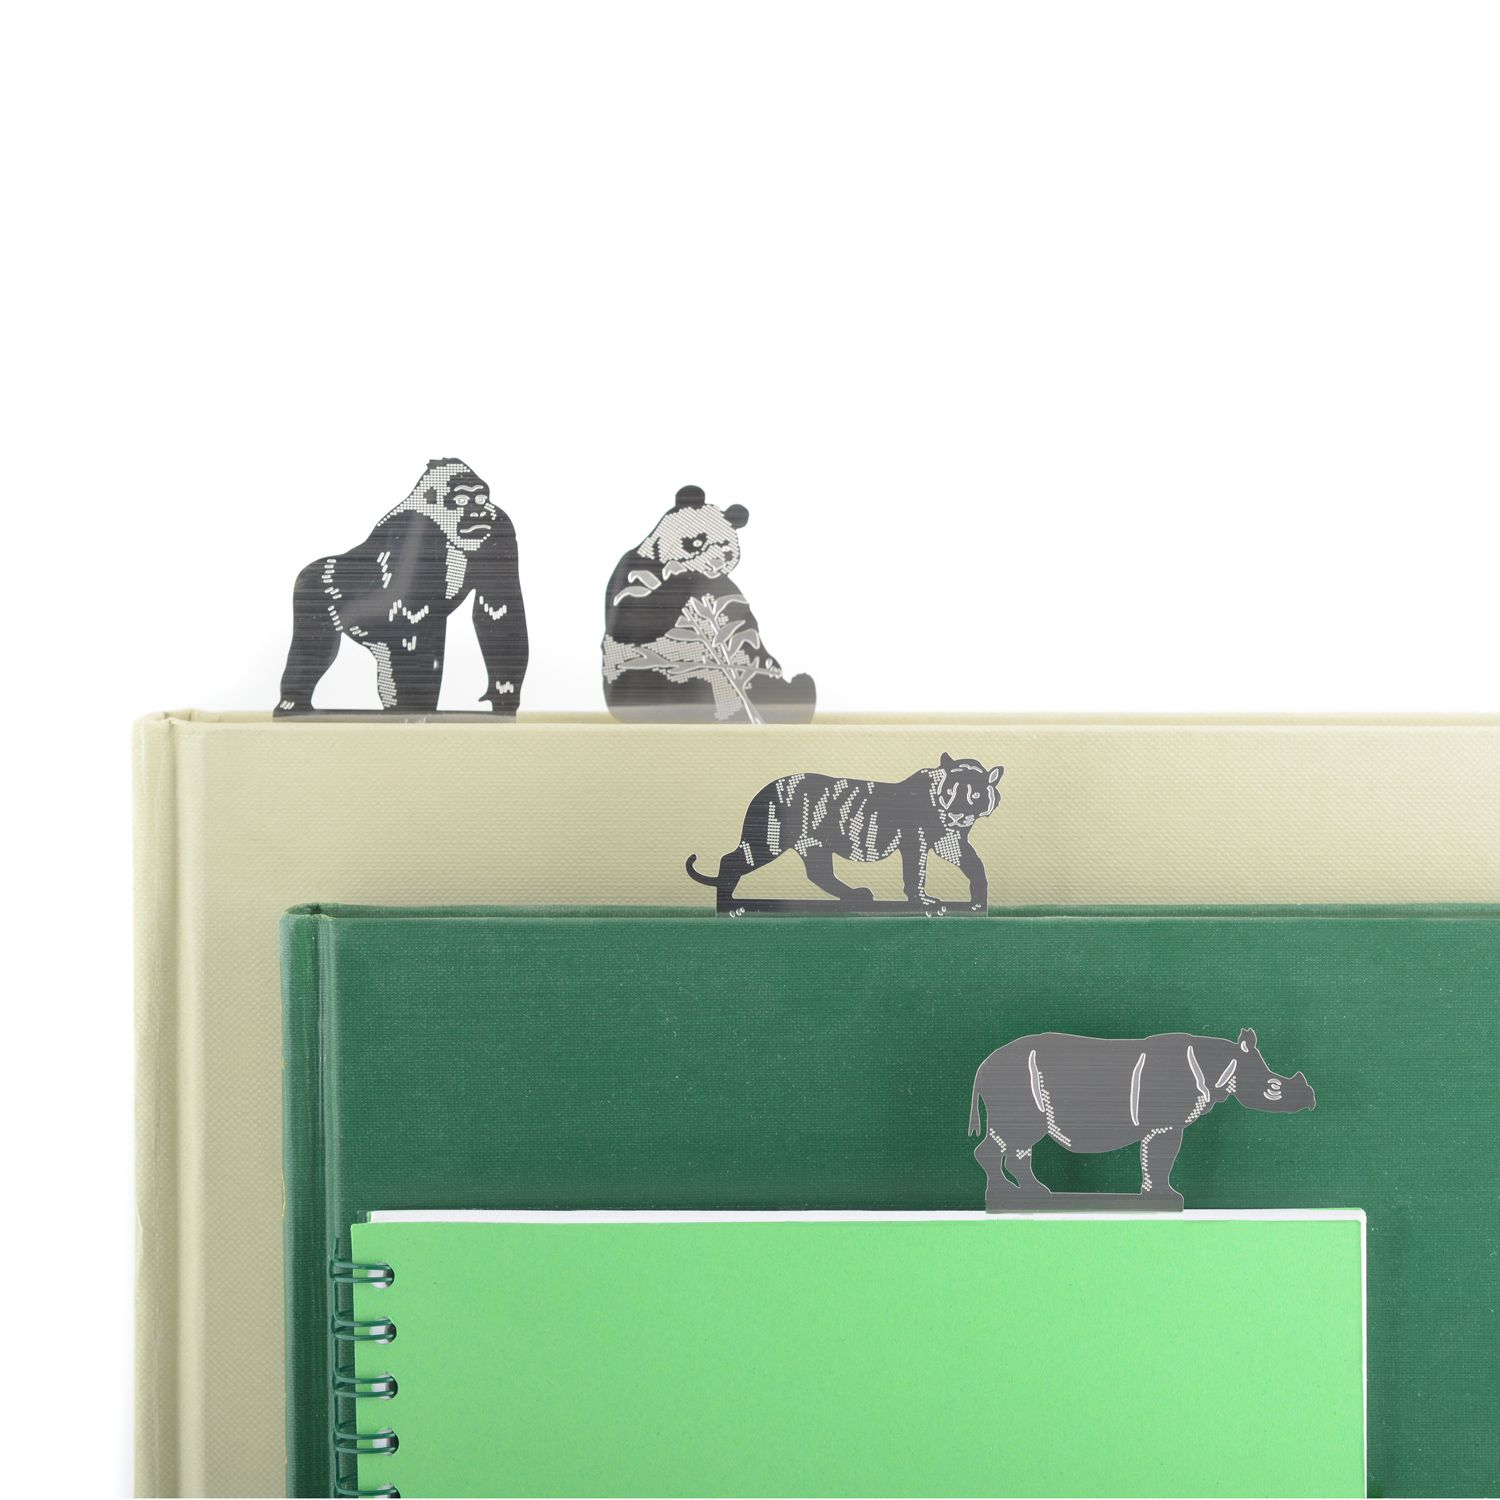 A perfect gift for animal and wildlife lovers! The set of metal bookmarks feature a Giant Panda, Javan Rhino, Mountain Gorilla and Sumatran Tiger